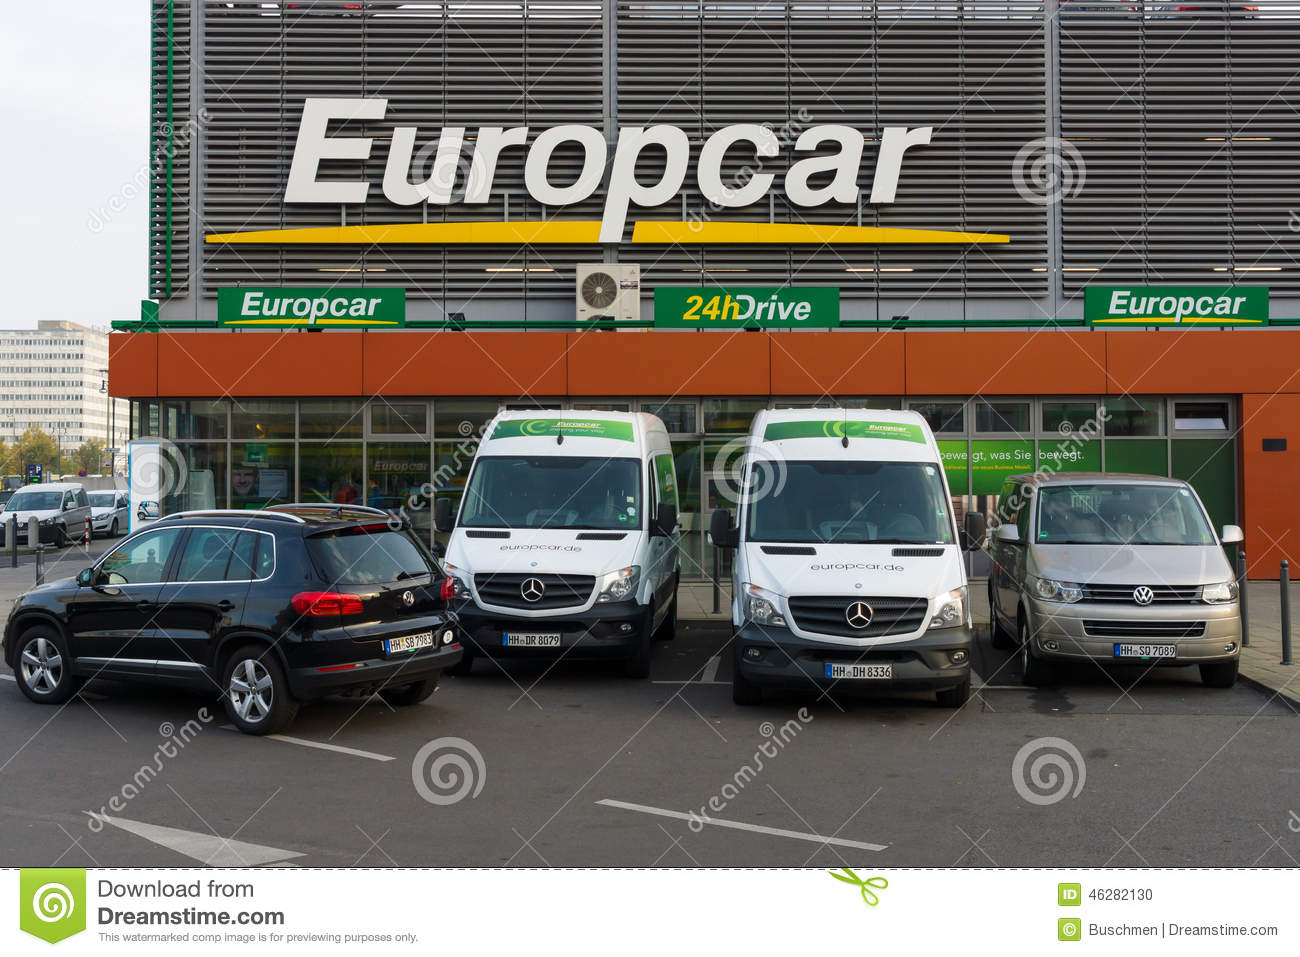 europcar est une soci t de location de voiture poss d e. Black Bedroom Furniture Sets. Home Design Ideas